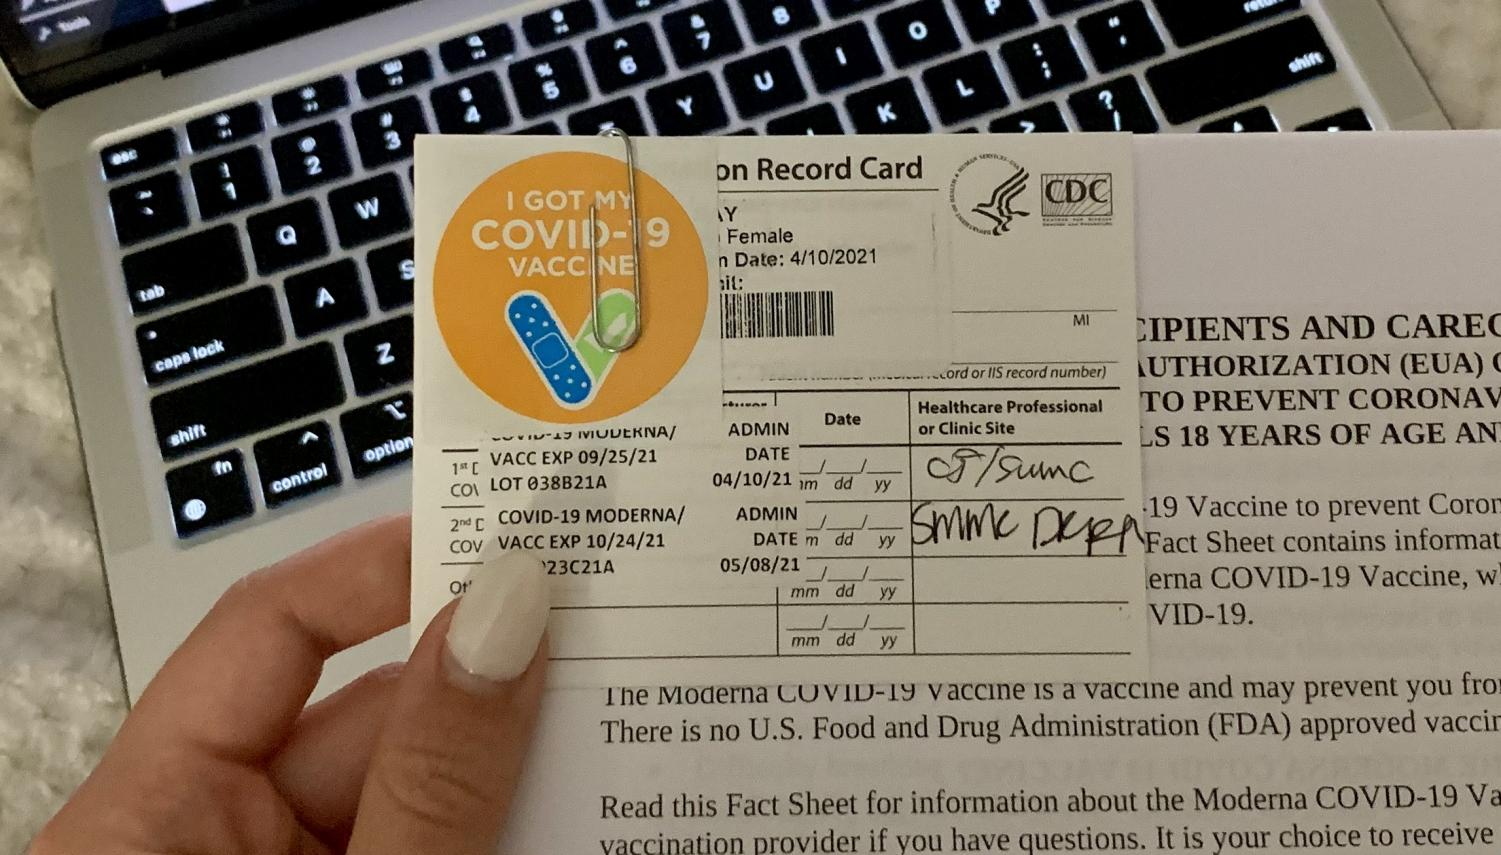 Vaccination card for the Moderna vaccine.